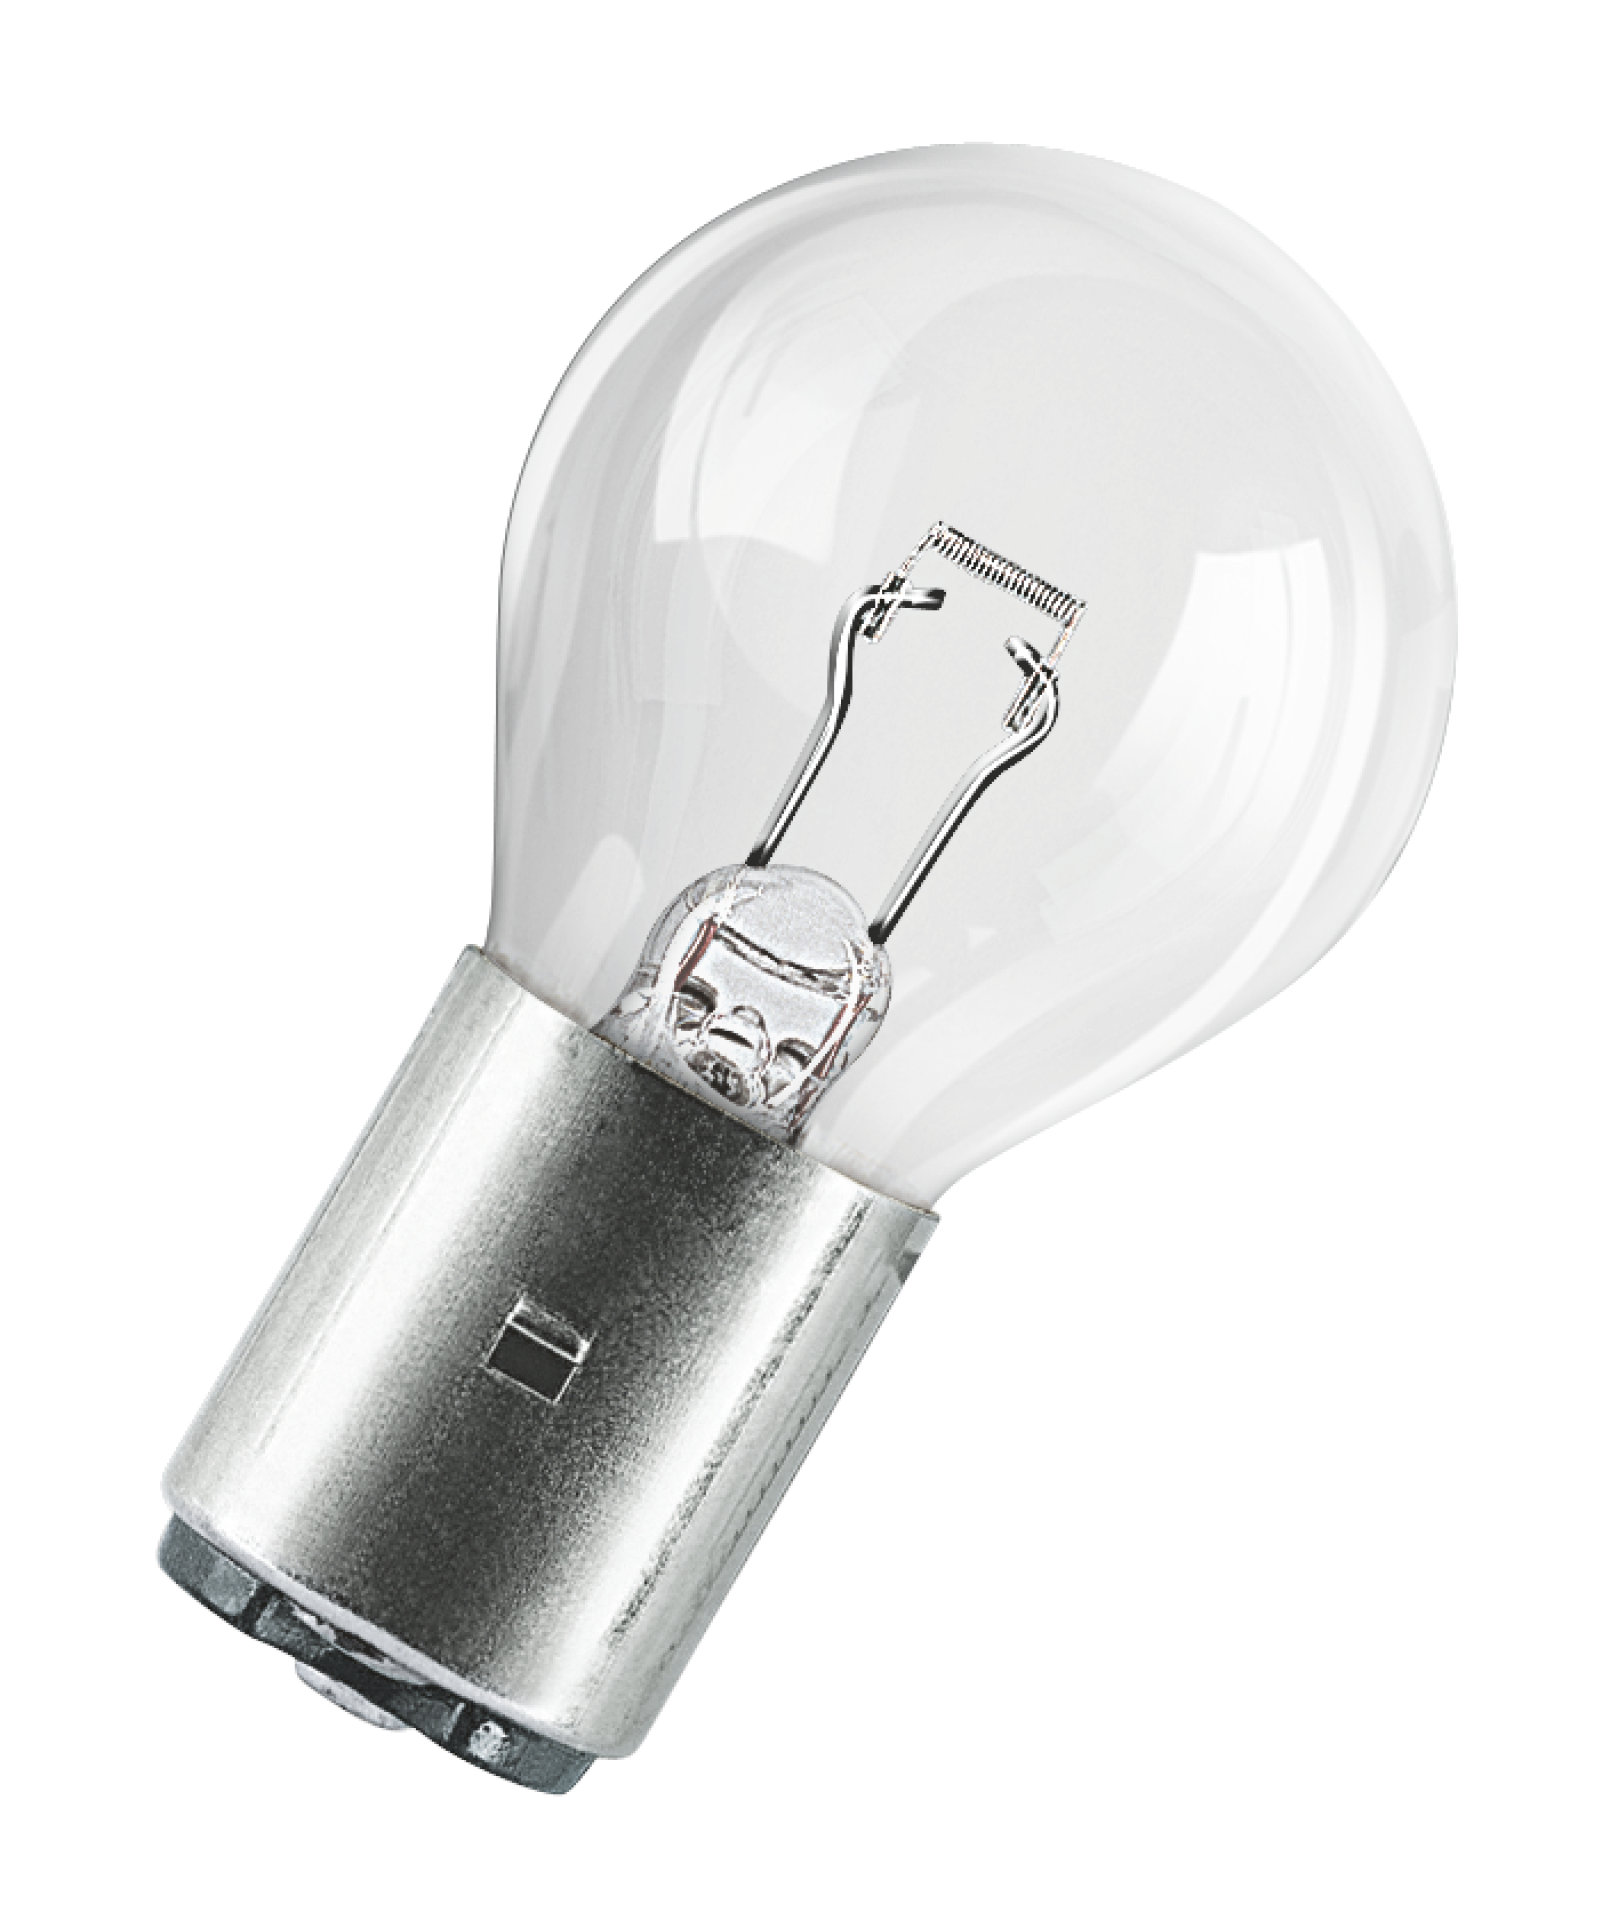 Low-voltage over-pressure longlife lamps for 10V systems, road traffic